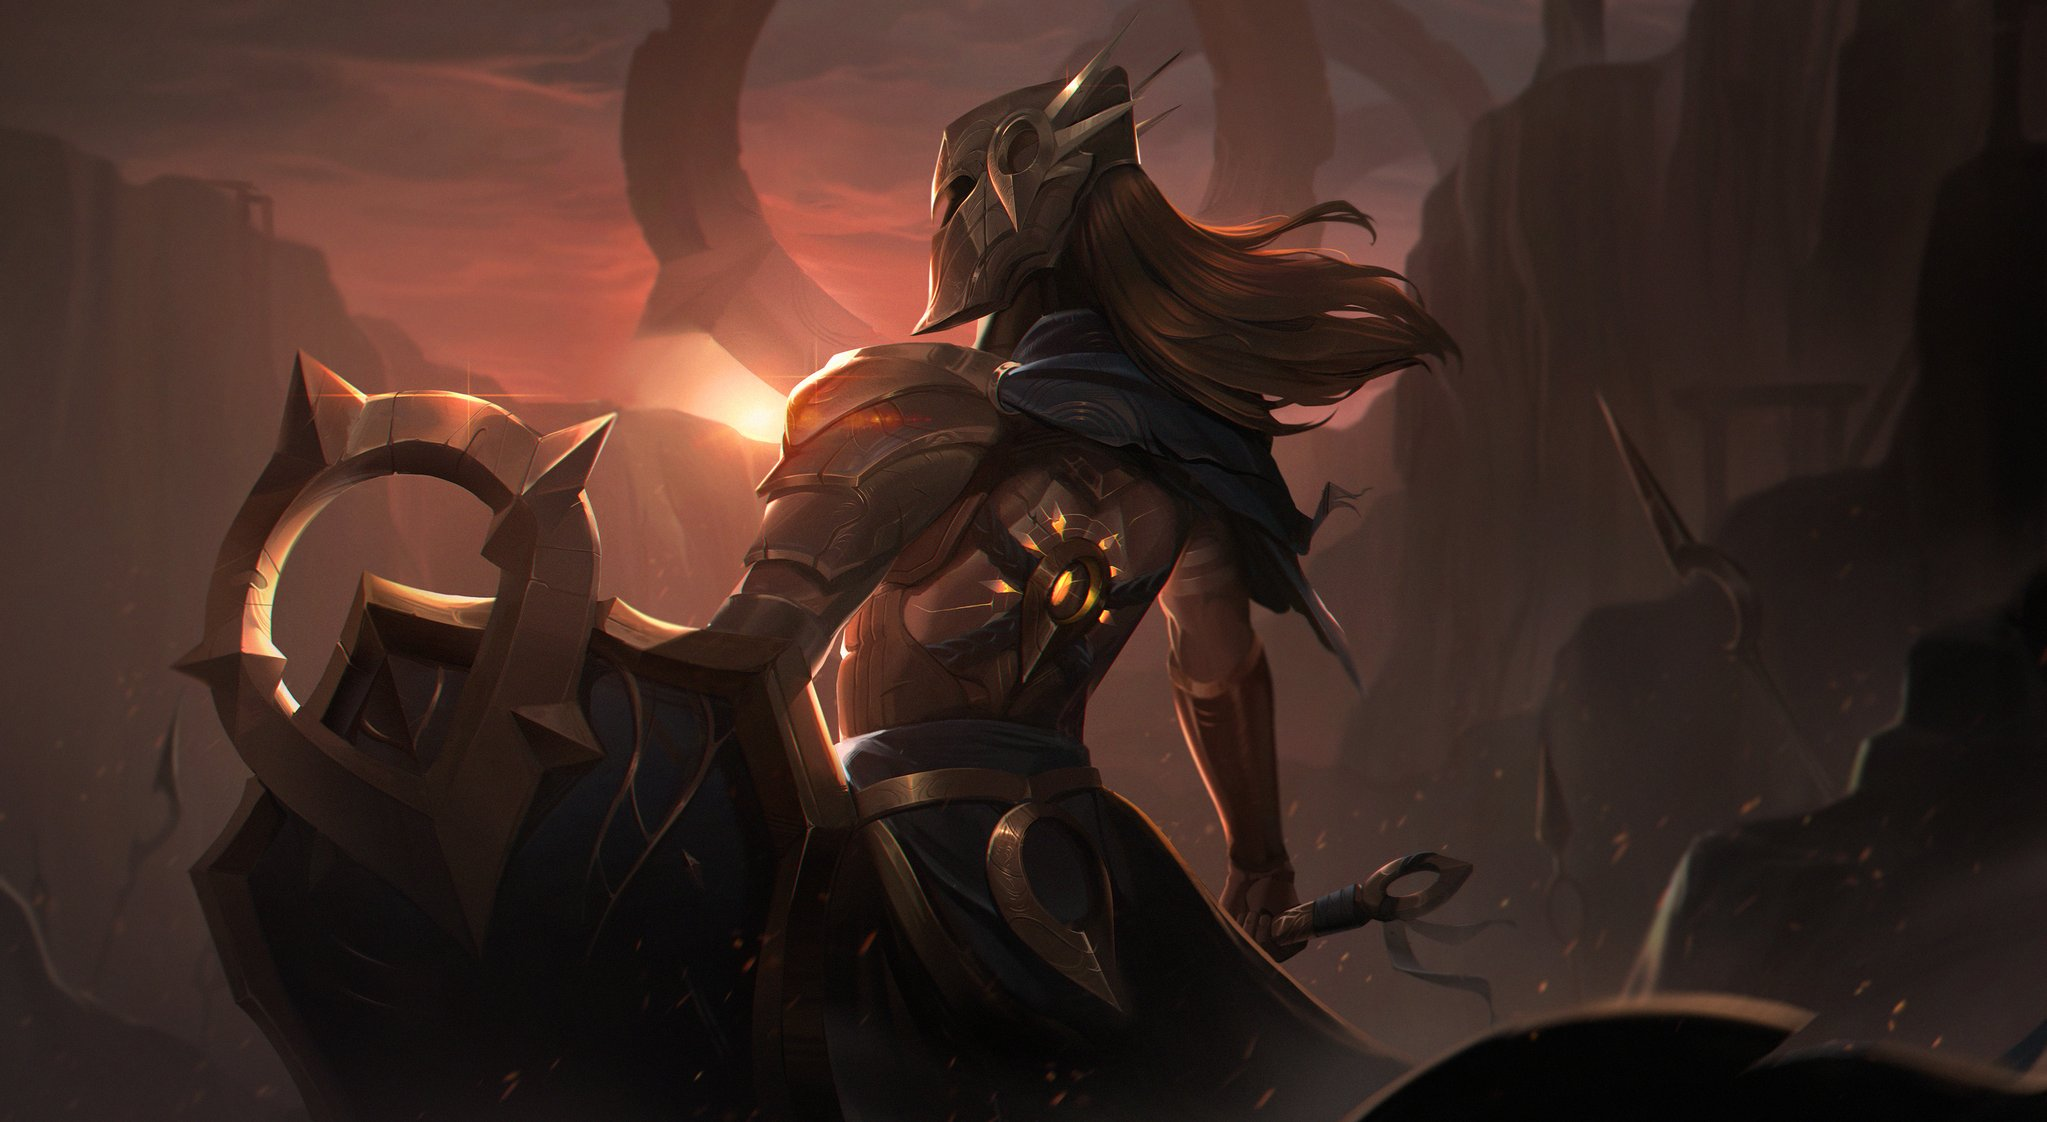 Fan Leona Rework Splash Fondo De Pantalla Hd Fondo De